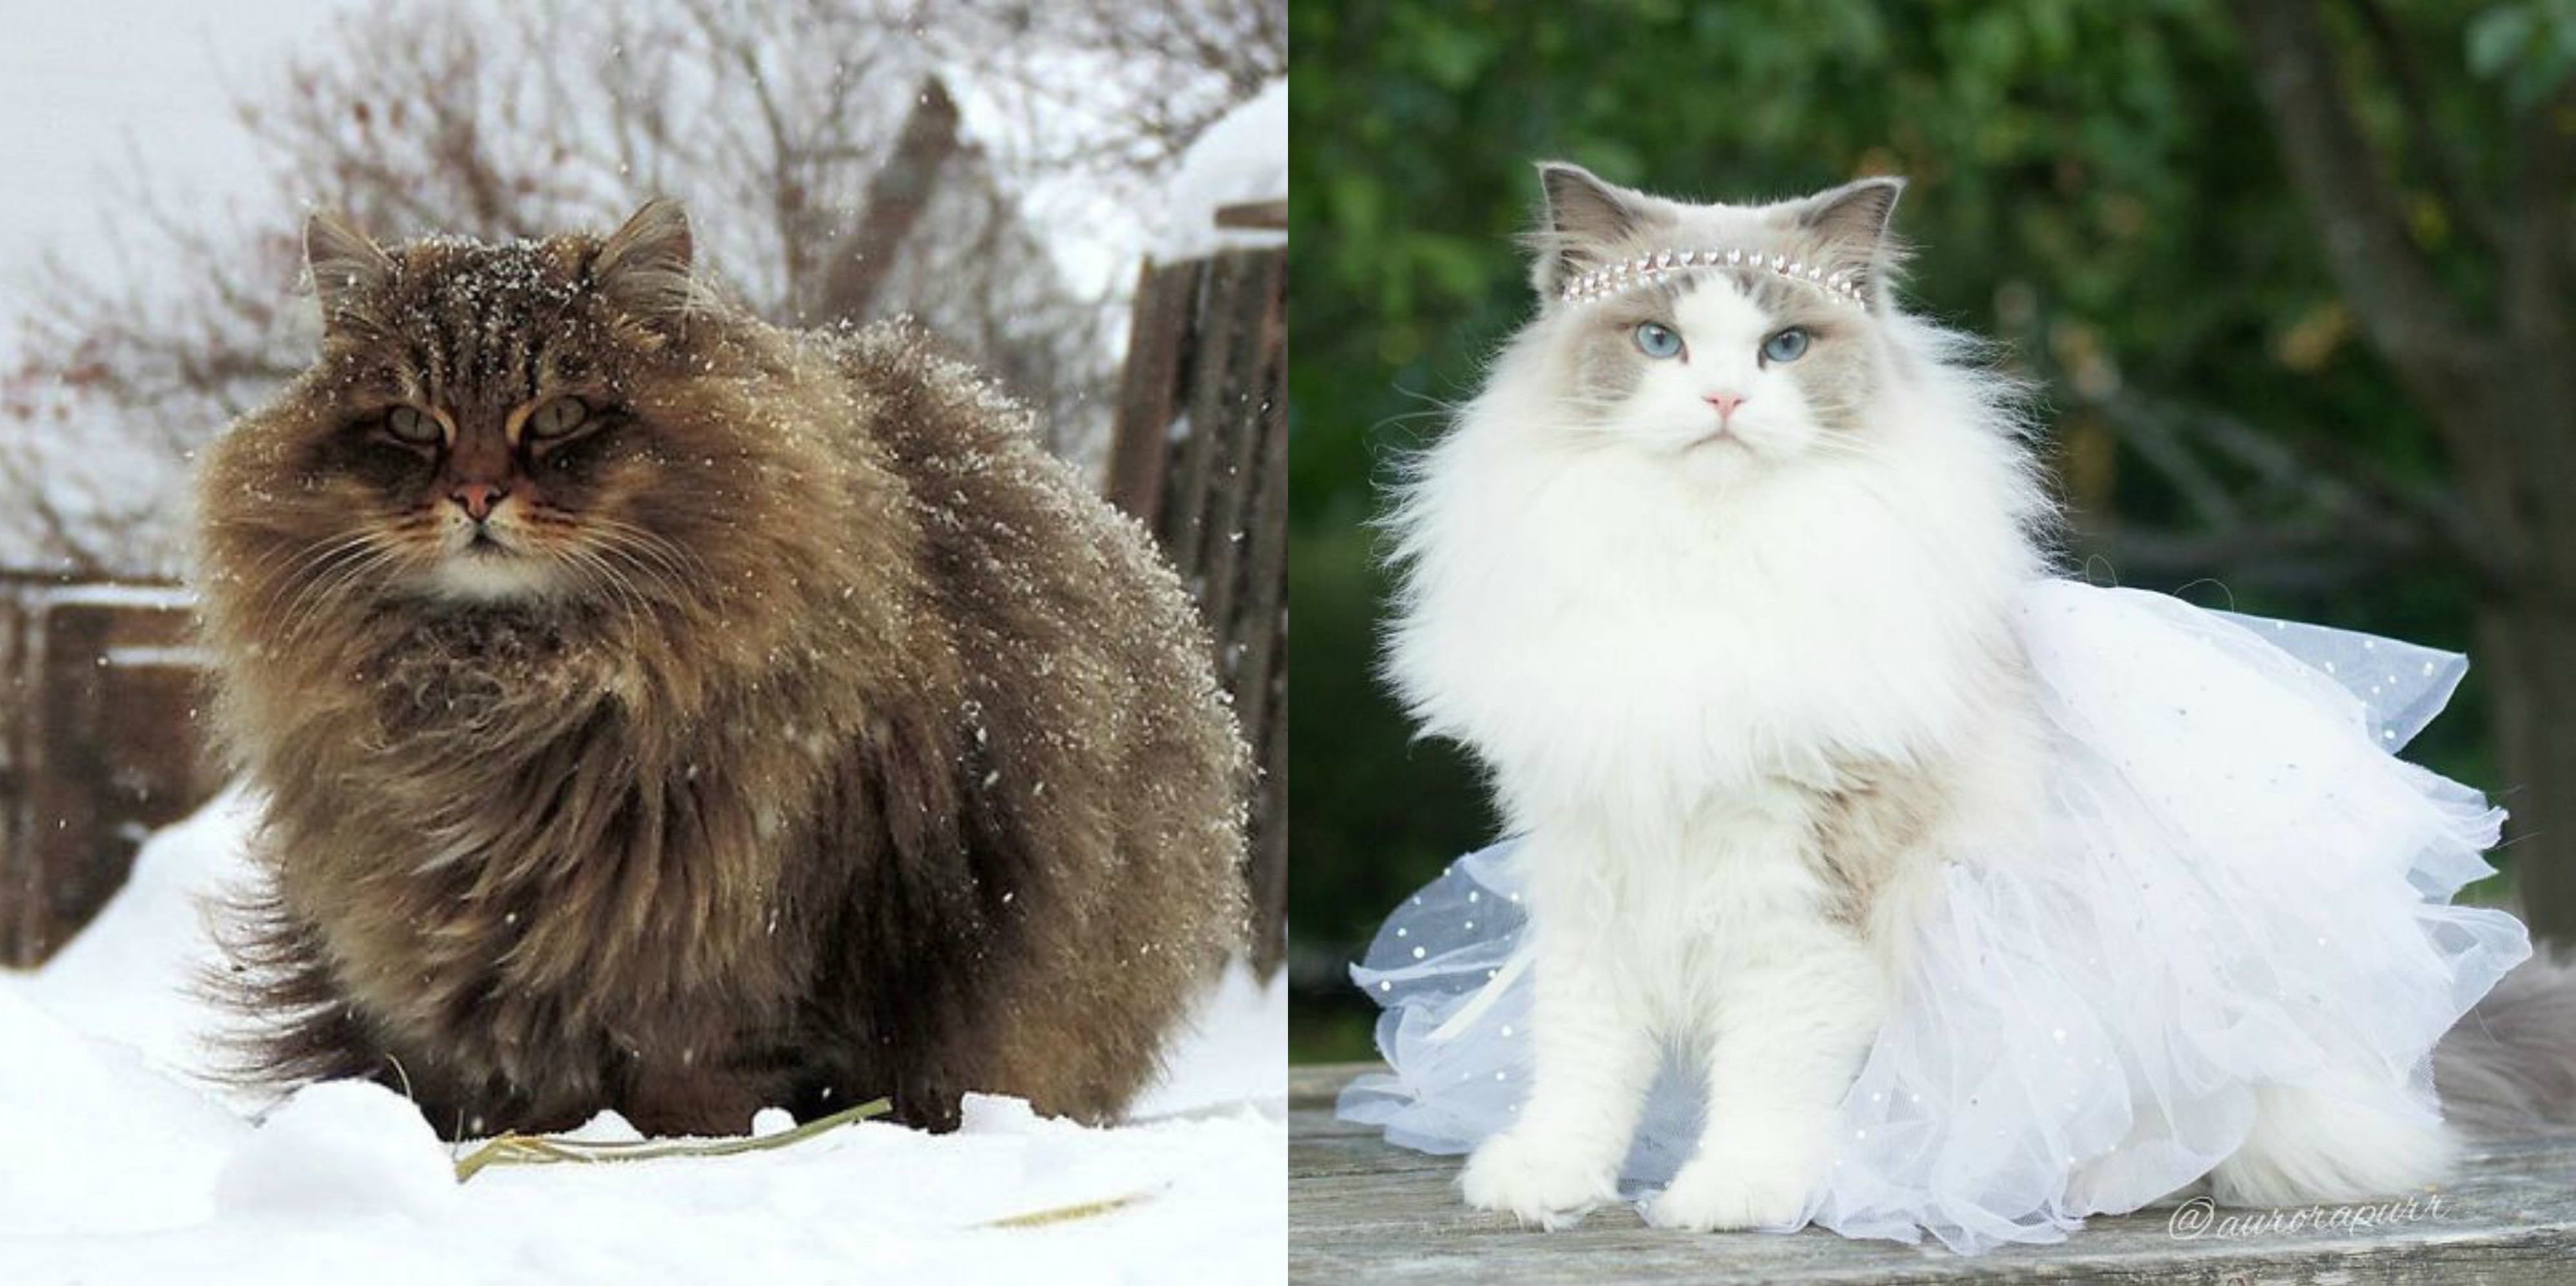 Fluffiest Cats In The World That Will Make You Inexplicably Happy - 25 of the fluffiest cats ever